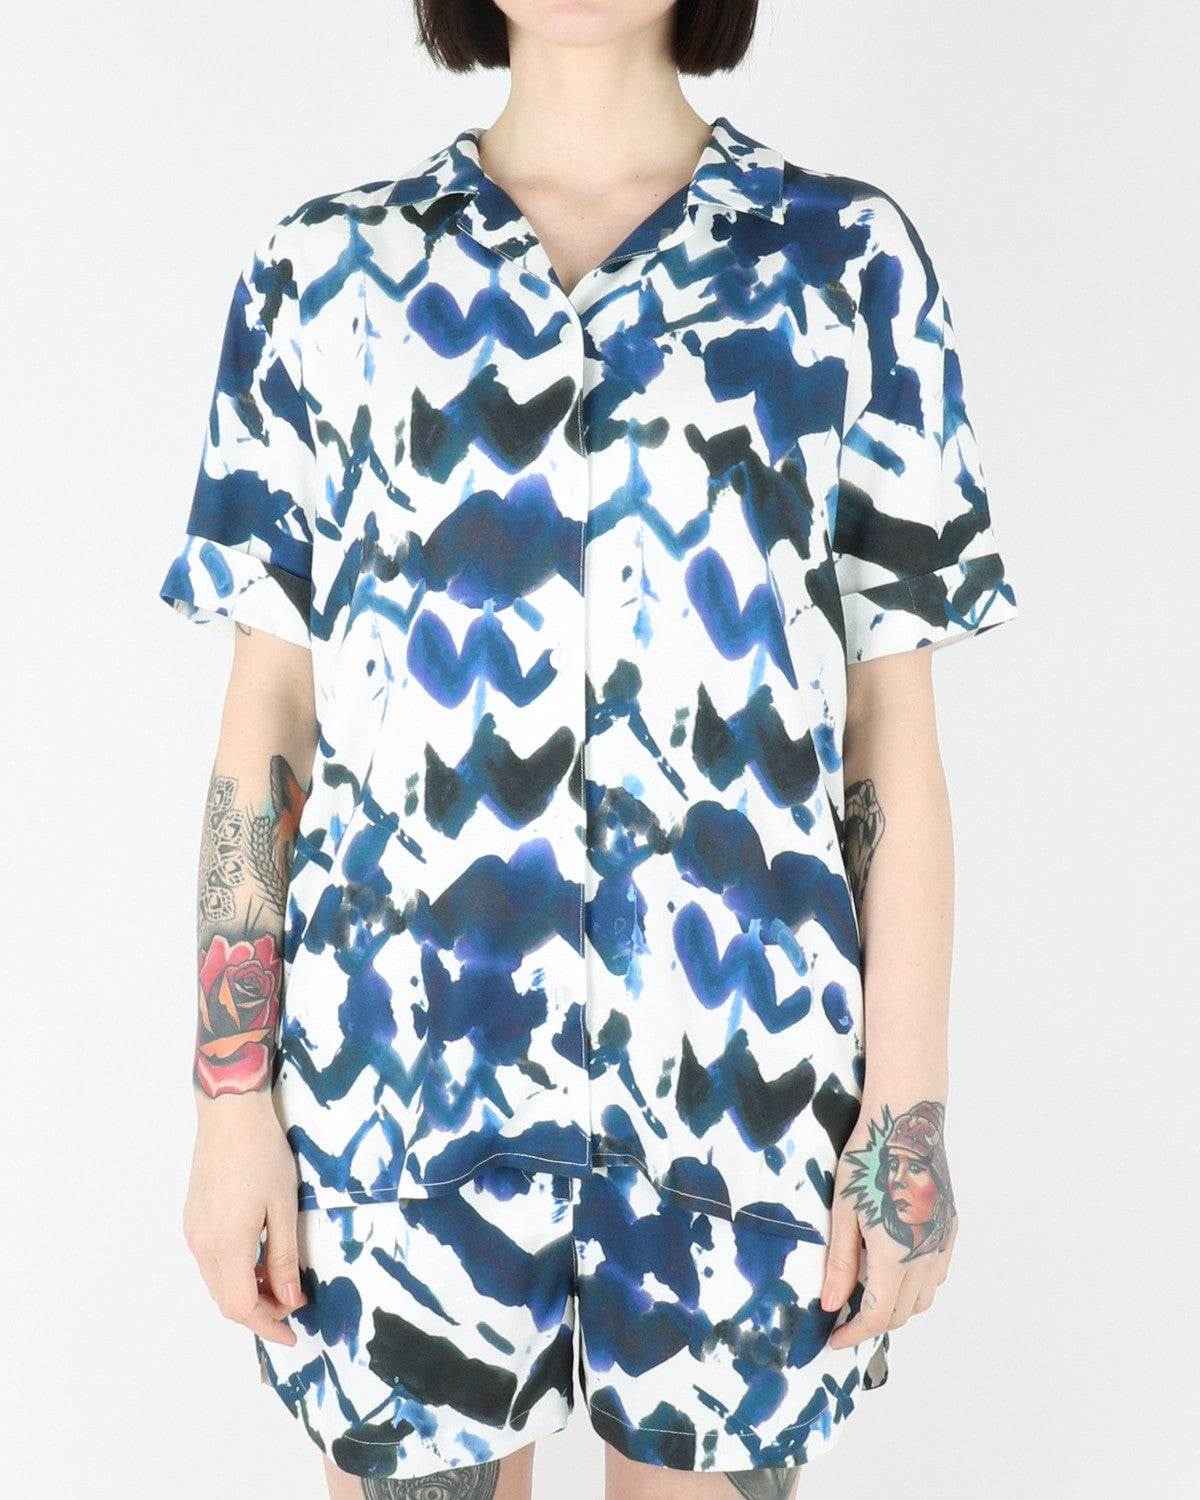 libertine libertine_page shirt_hq blue white navy_view_1_3